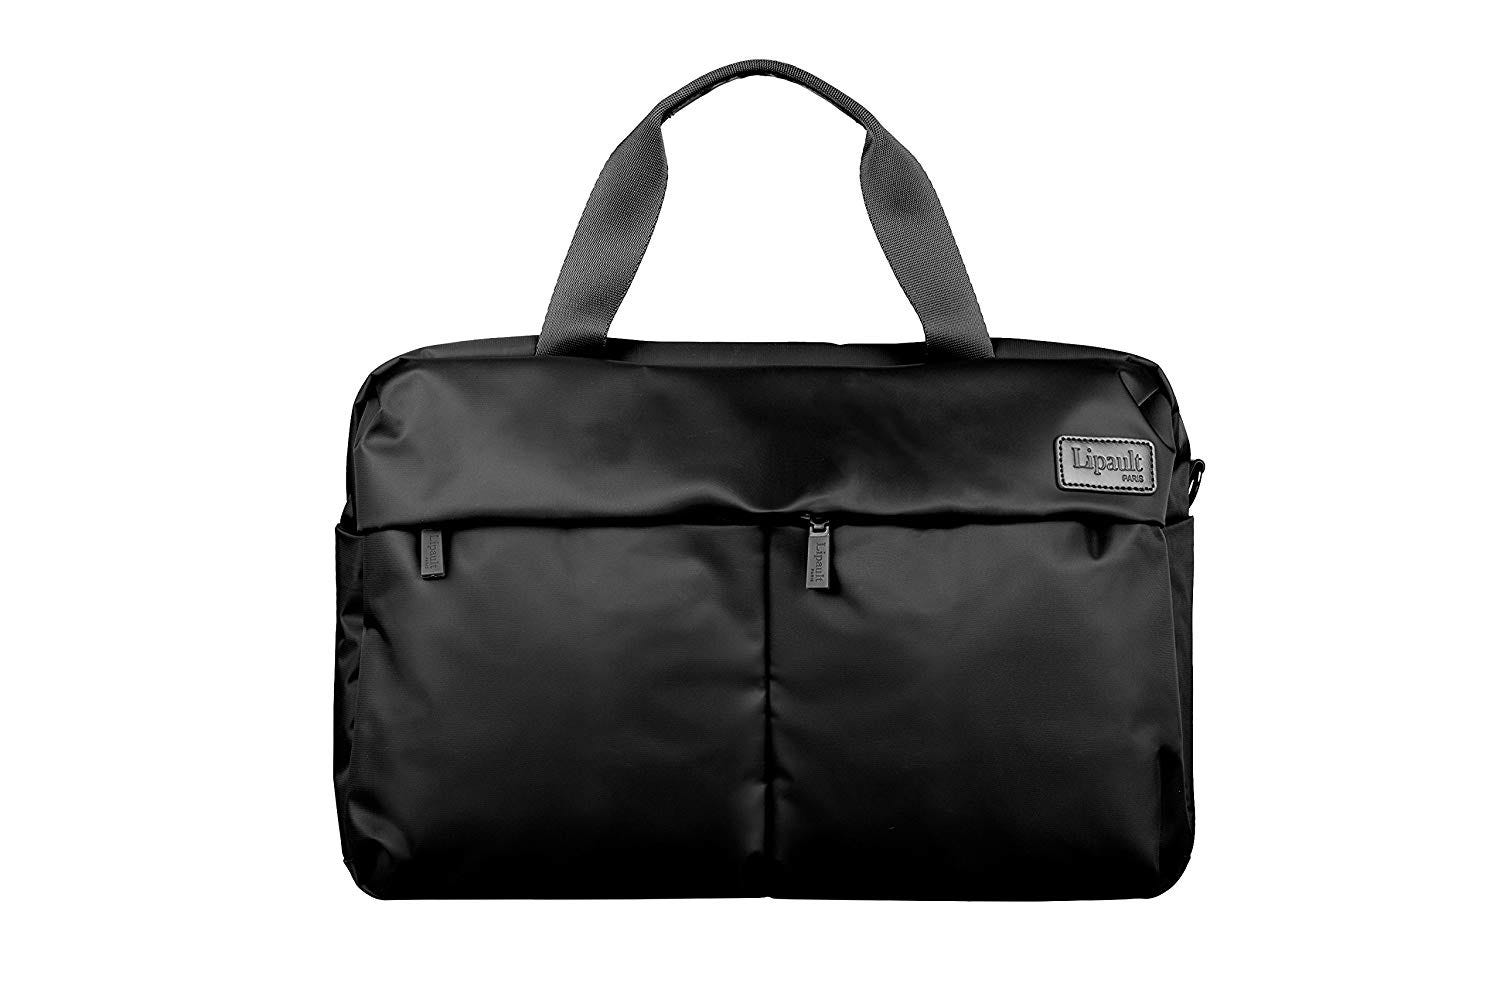 20ed02d3b50c Best Weekender Bags For Women To Travel In Style 2019